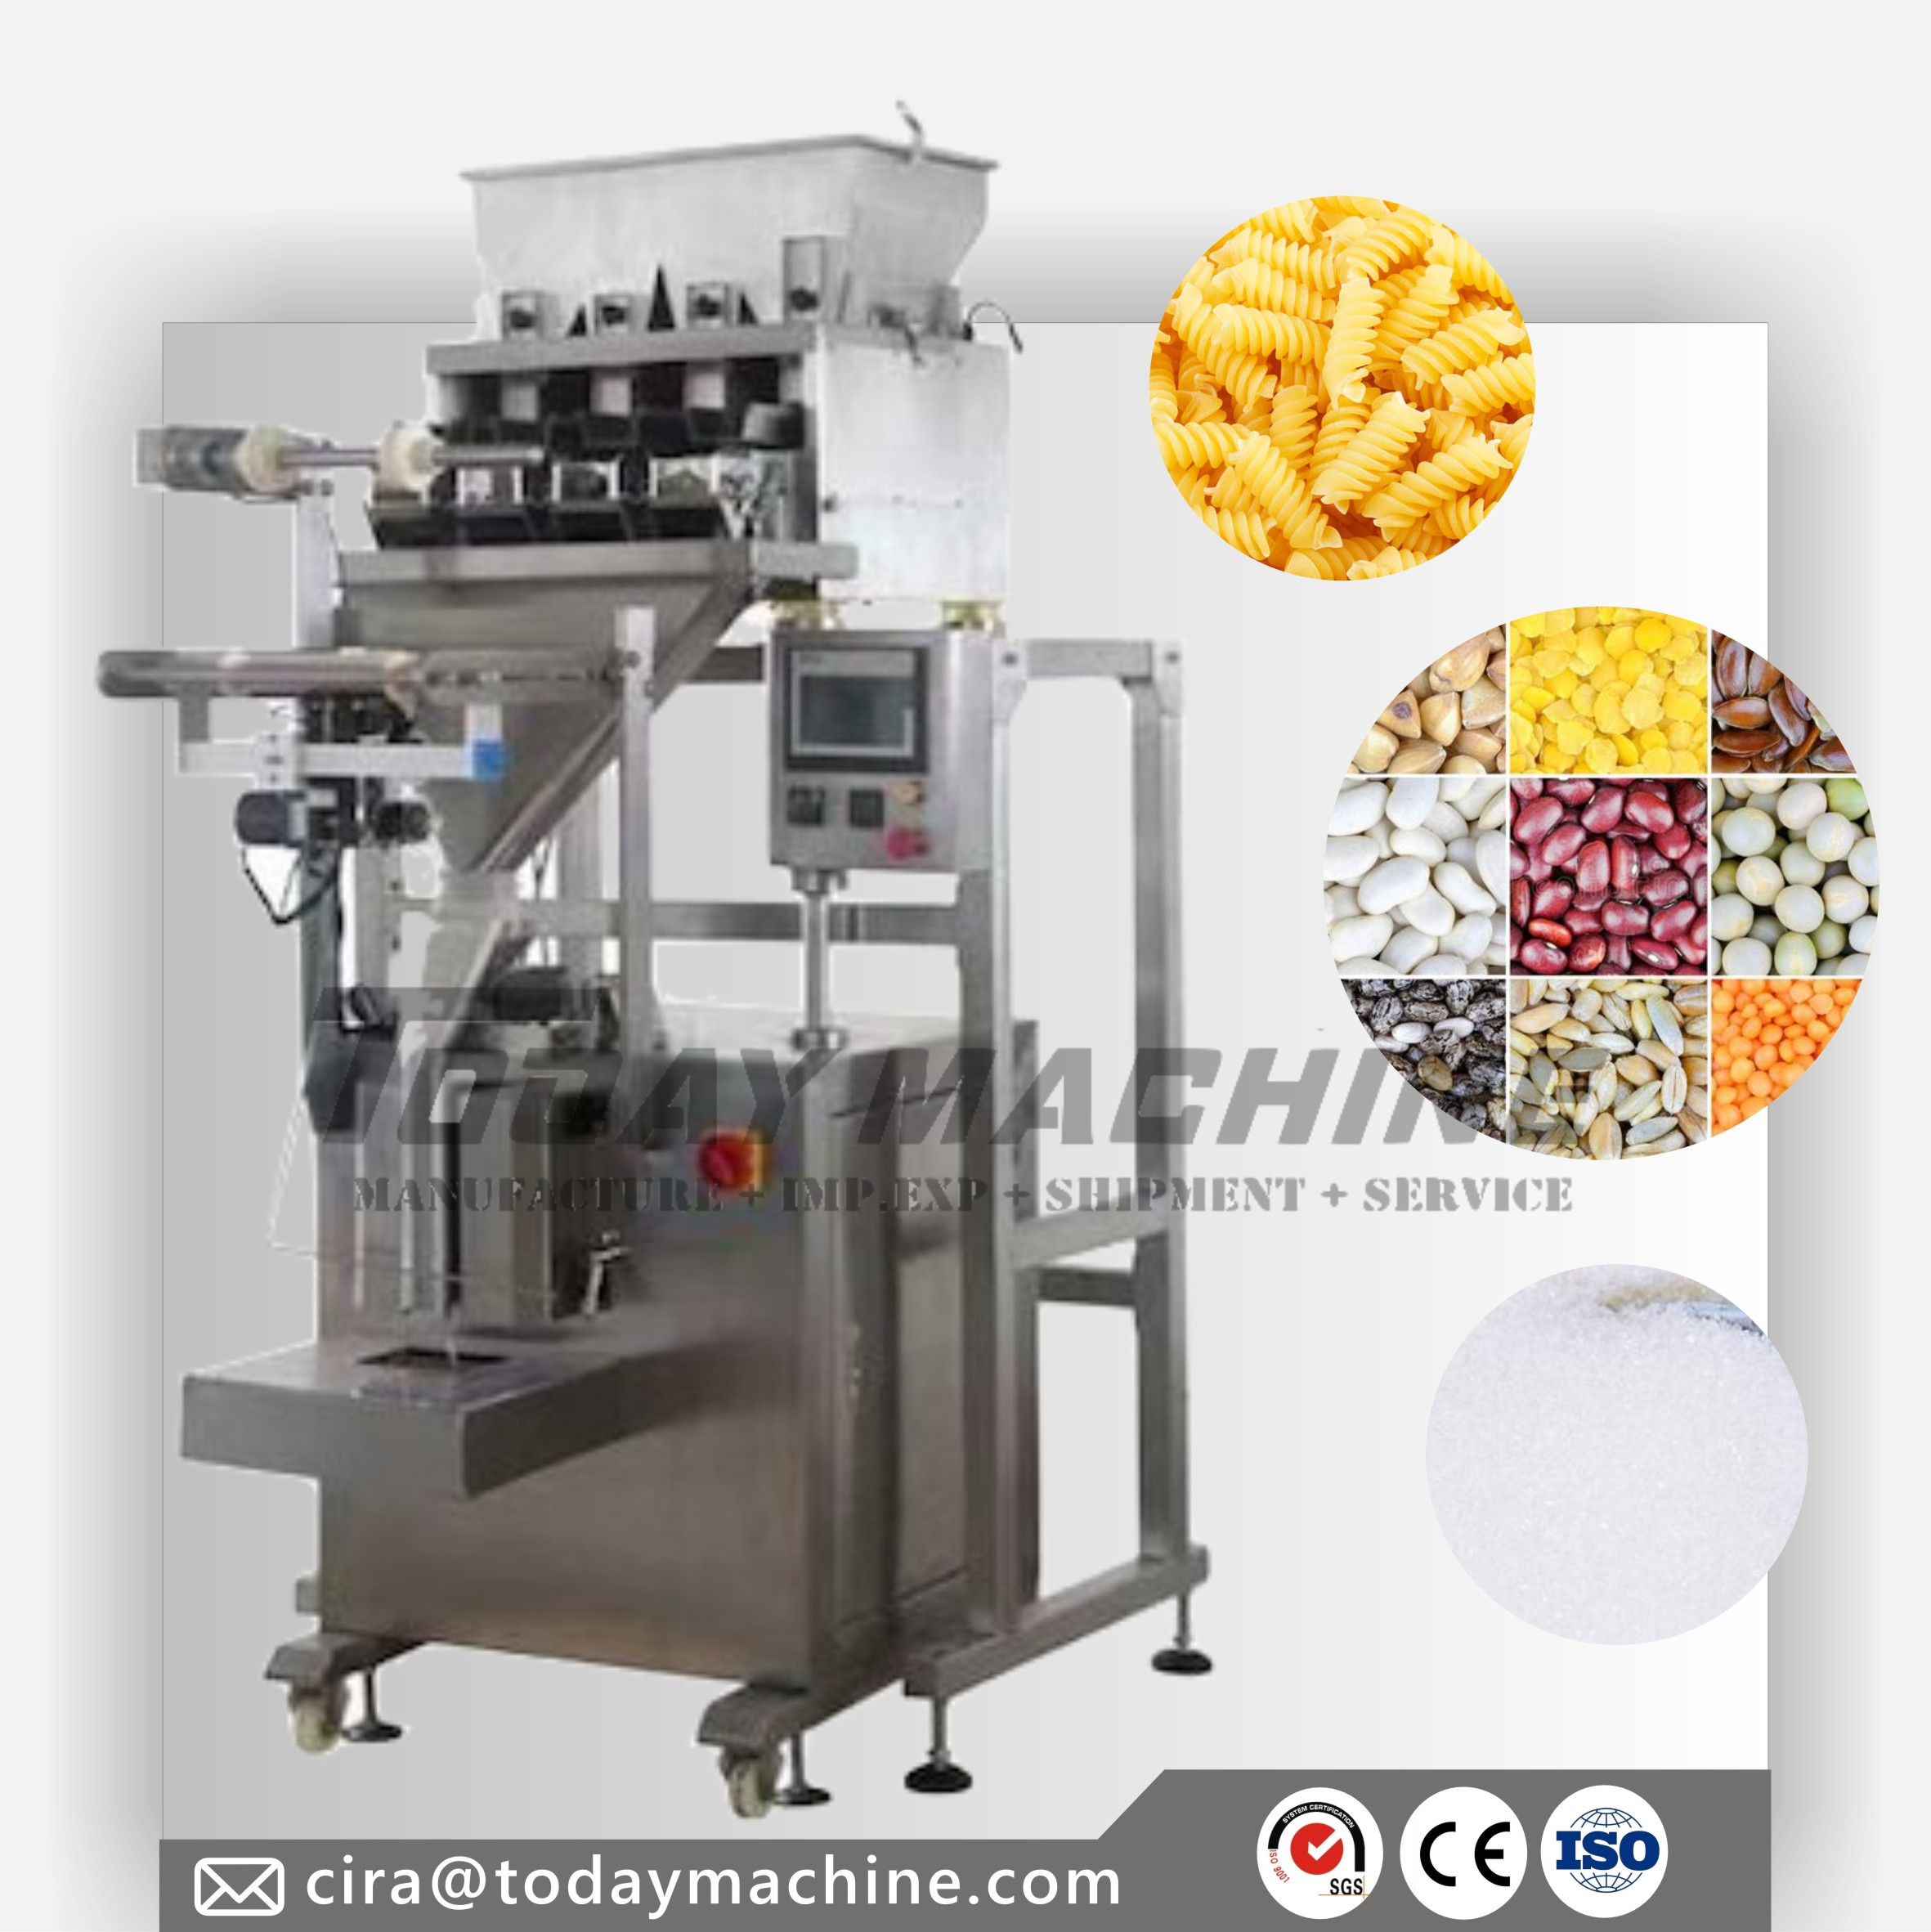 Multihead Weigher Packaging Machine Multi Function Snacksweigher